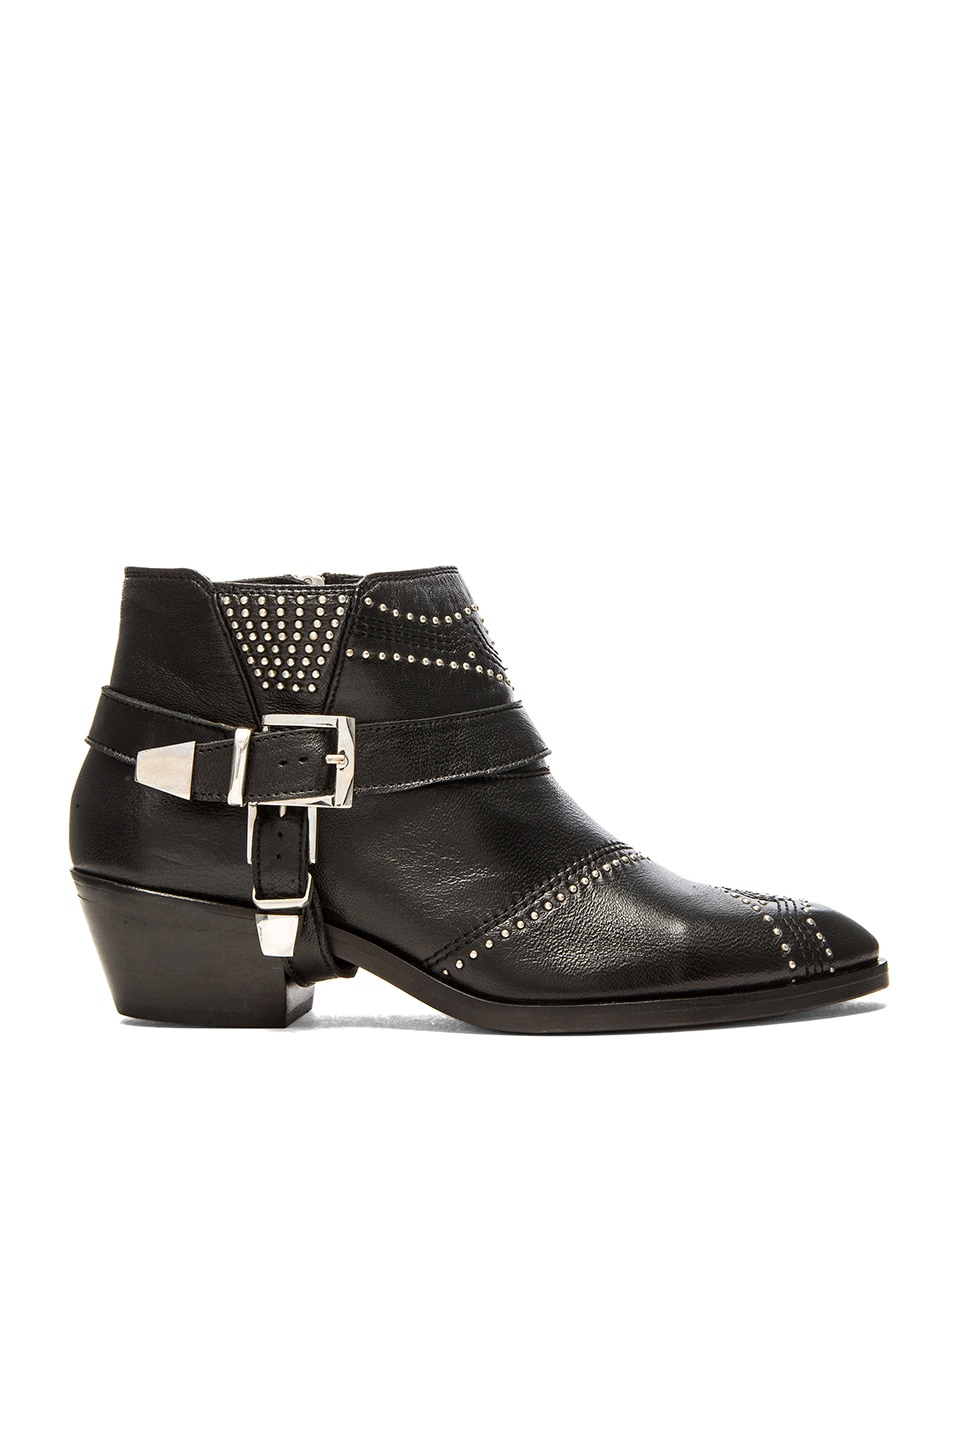 Studded Boots with Buckles by Anine Bing